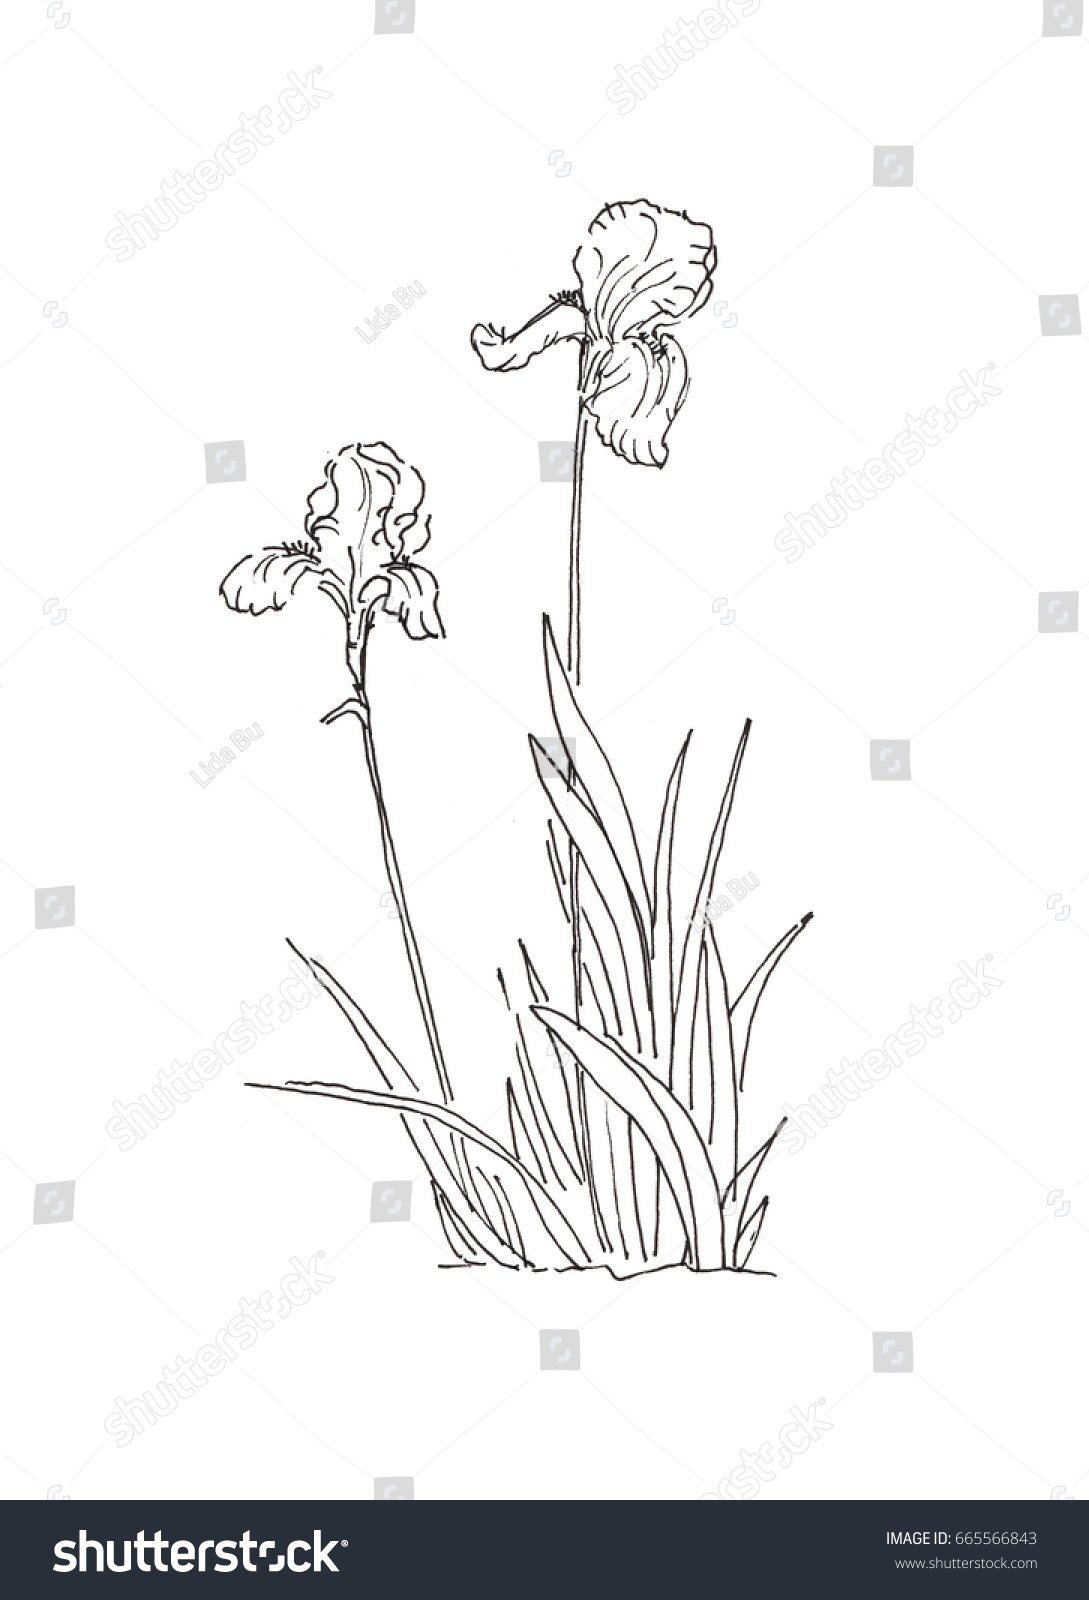 Bush Iris Flower Ink Pen Black Stock Illustration 665566843